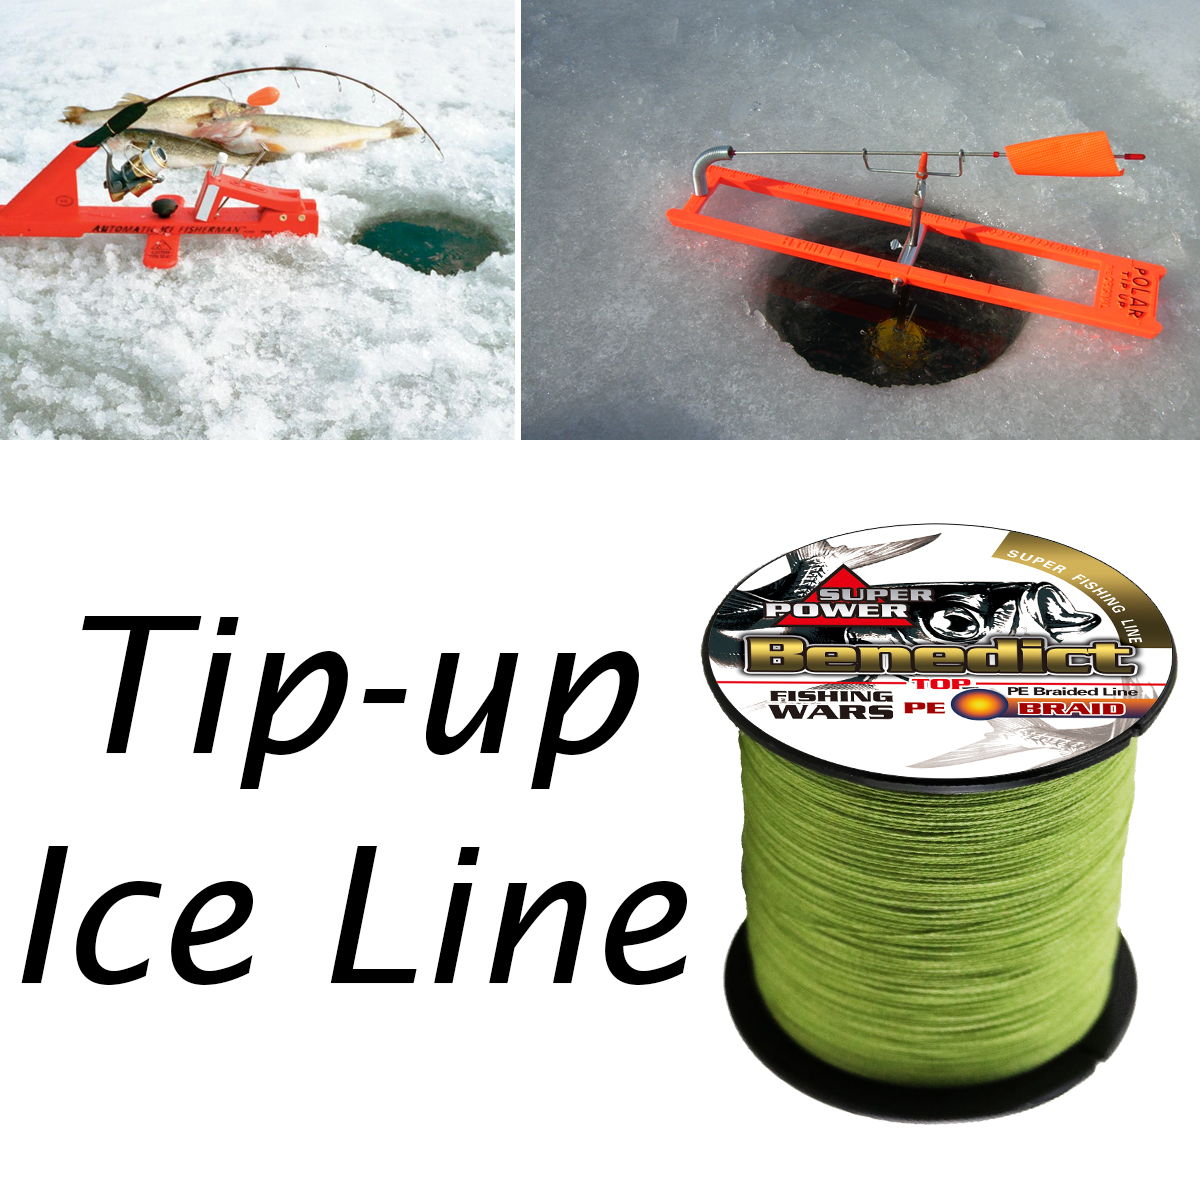 fishing braid line 1500m 2000m wire durable sea ocean ice fishing pe line  fishing all 8 weaves ultra high strength  8 300LBS-in Fishing Lines from Sports & Entertainment